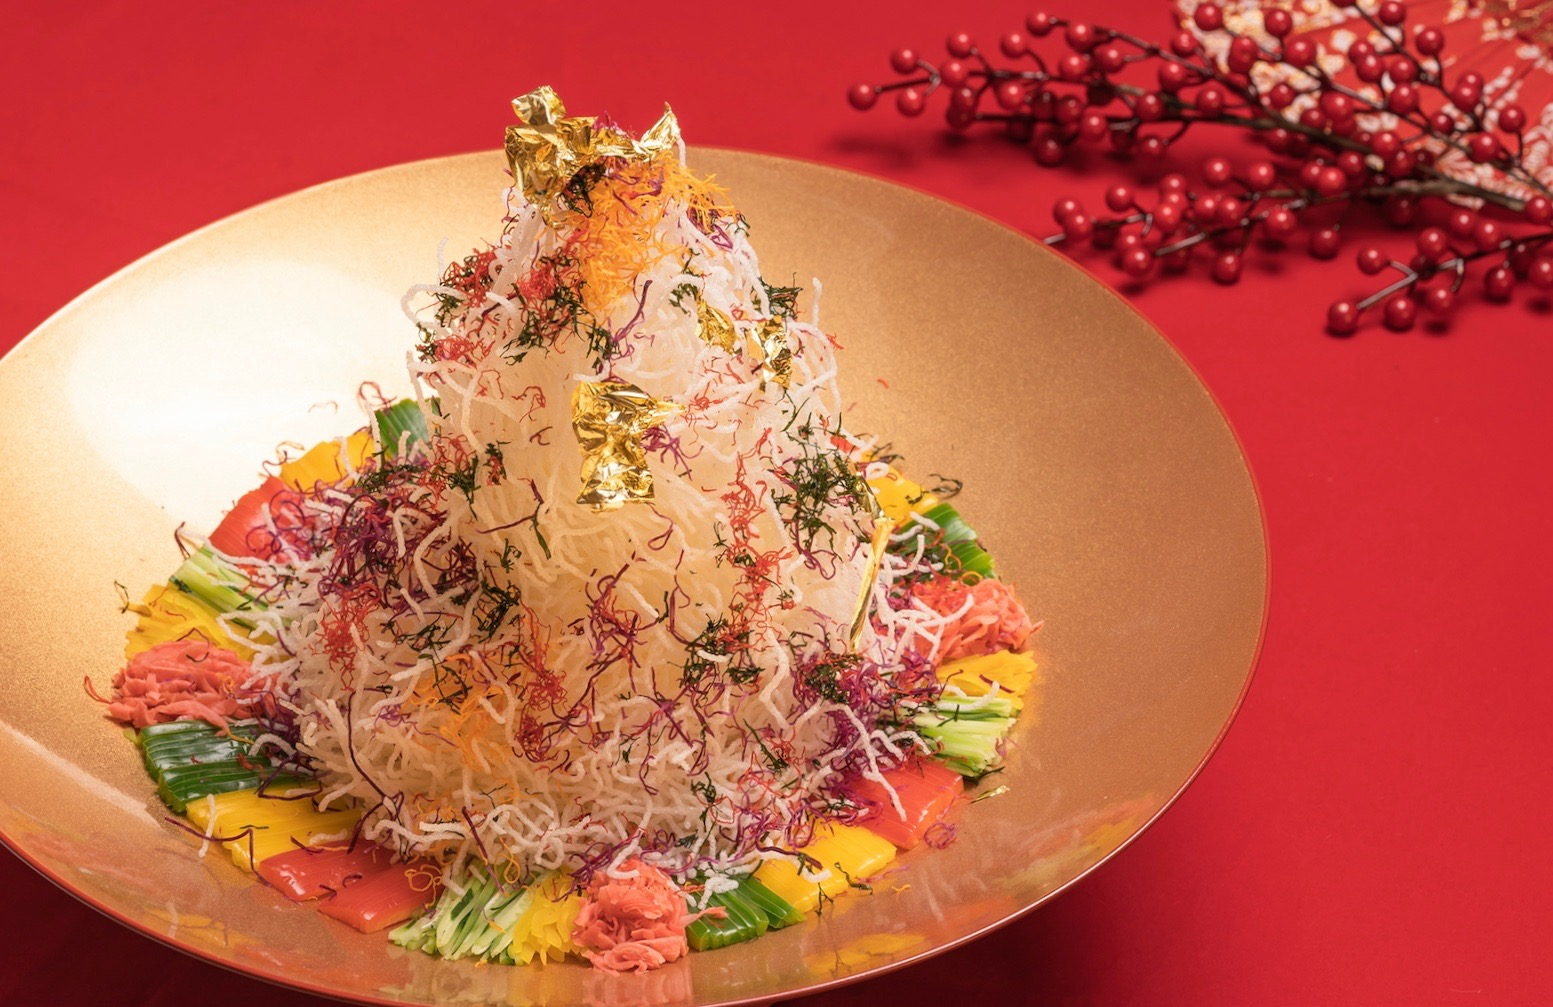 lo hei at Yan, at National Gallery Singapore